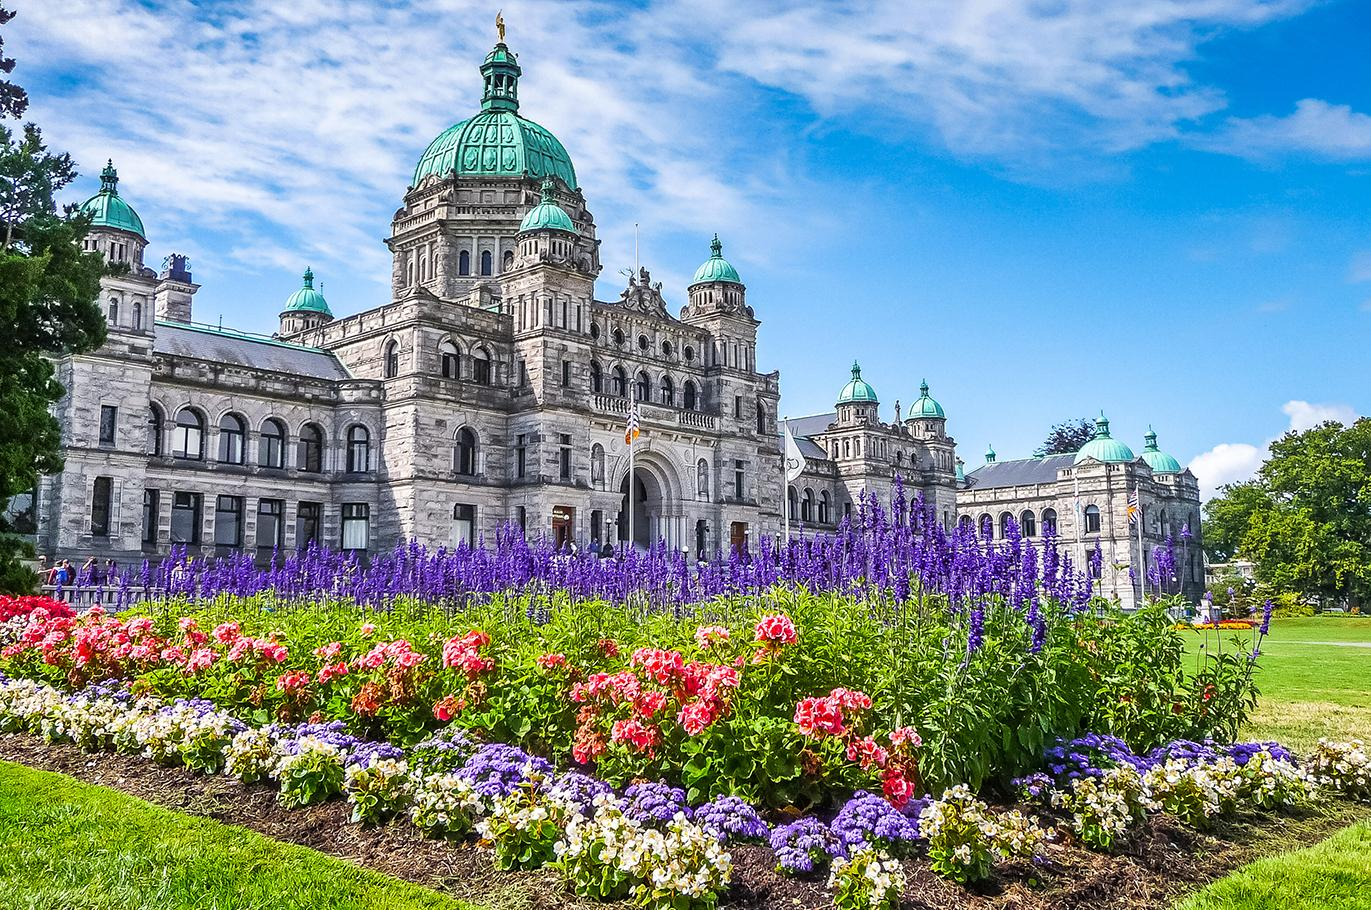 Views of the Parliament Building and flowers in Victoria British Columbia